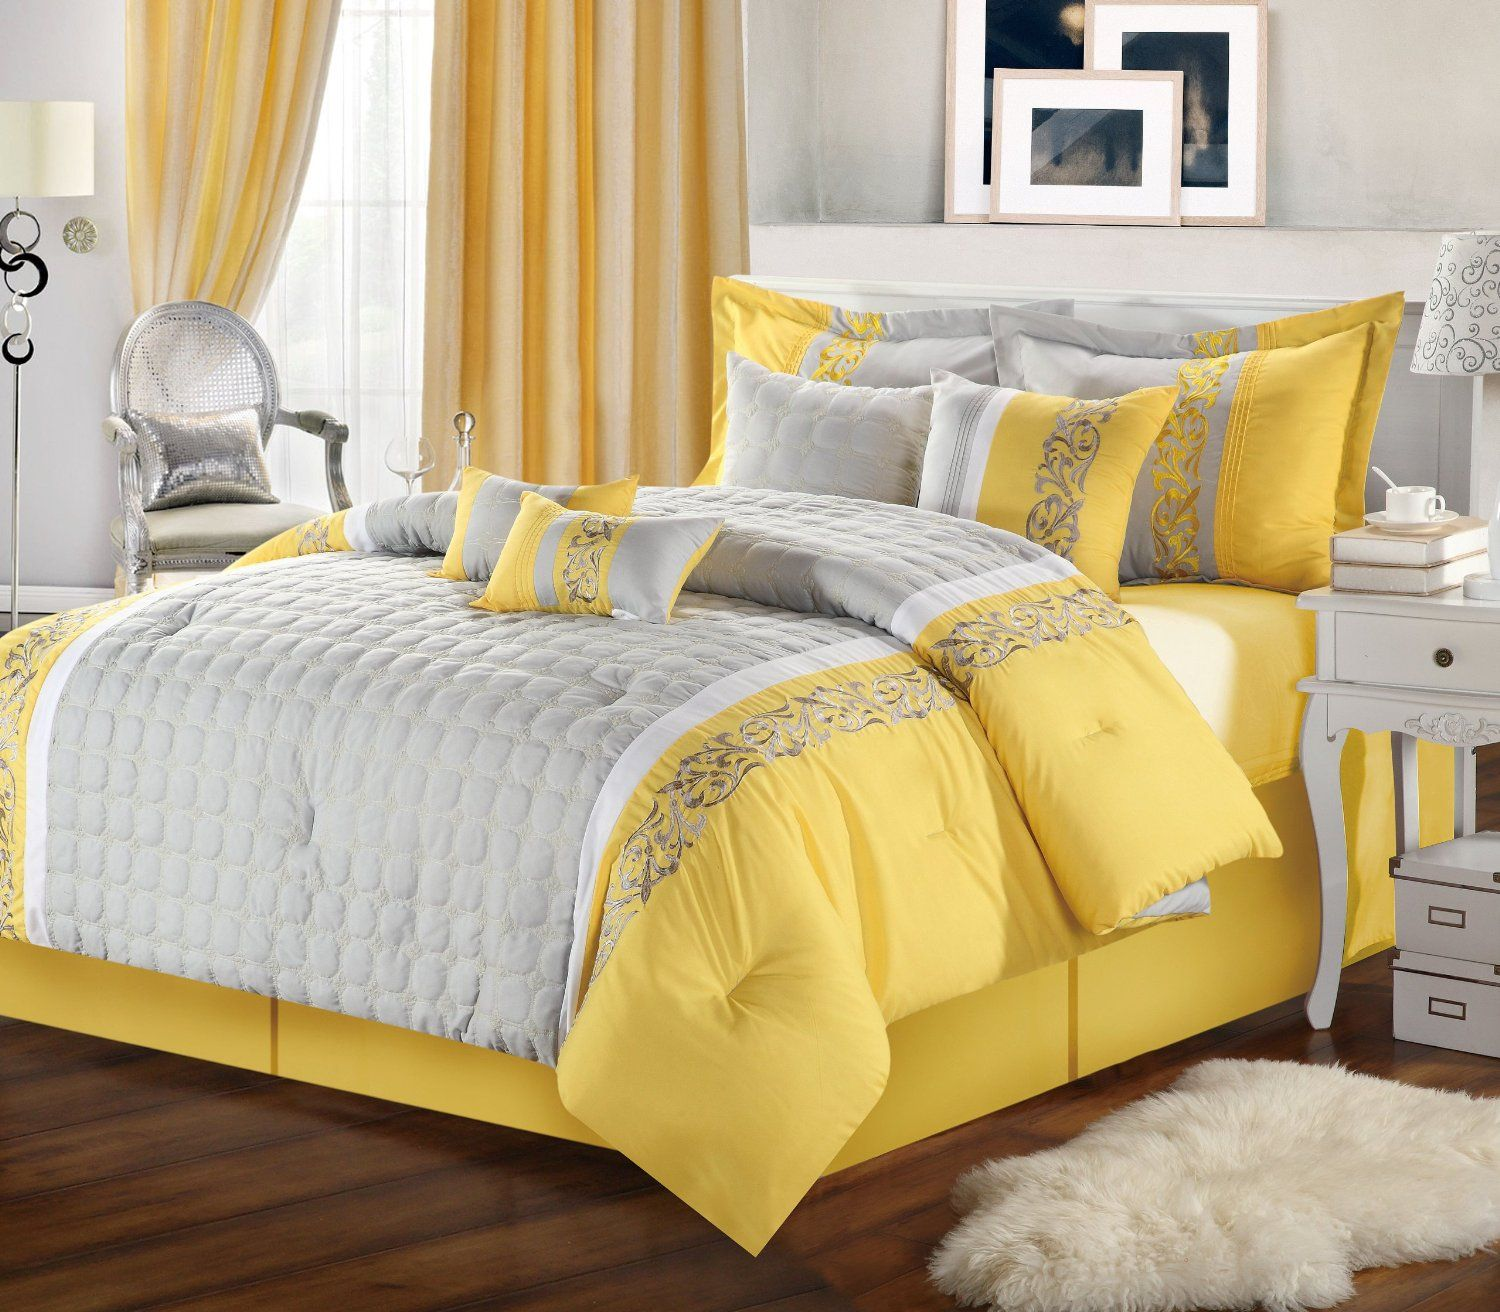 Bedroom Ideas Yellow And Grey comforter sets | grey and yellow bedding sets - grey and yellow